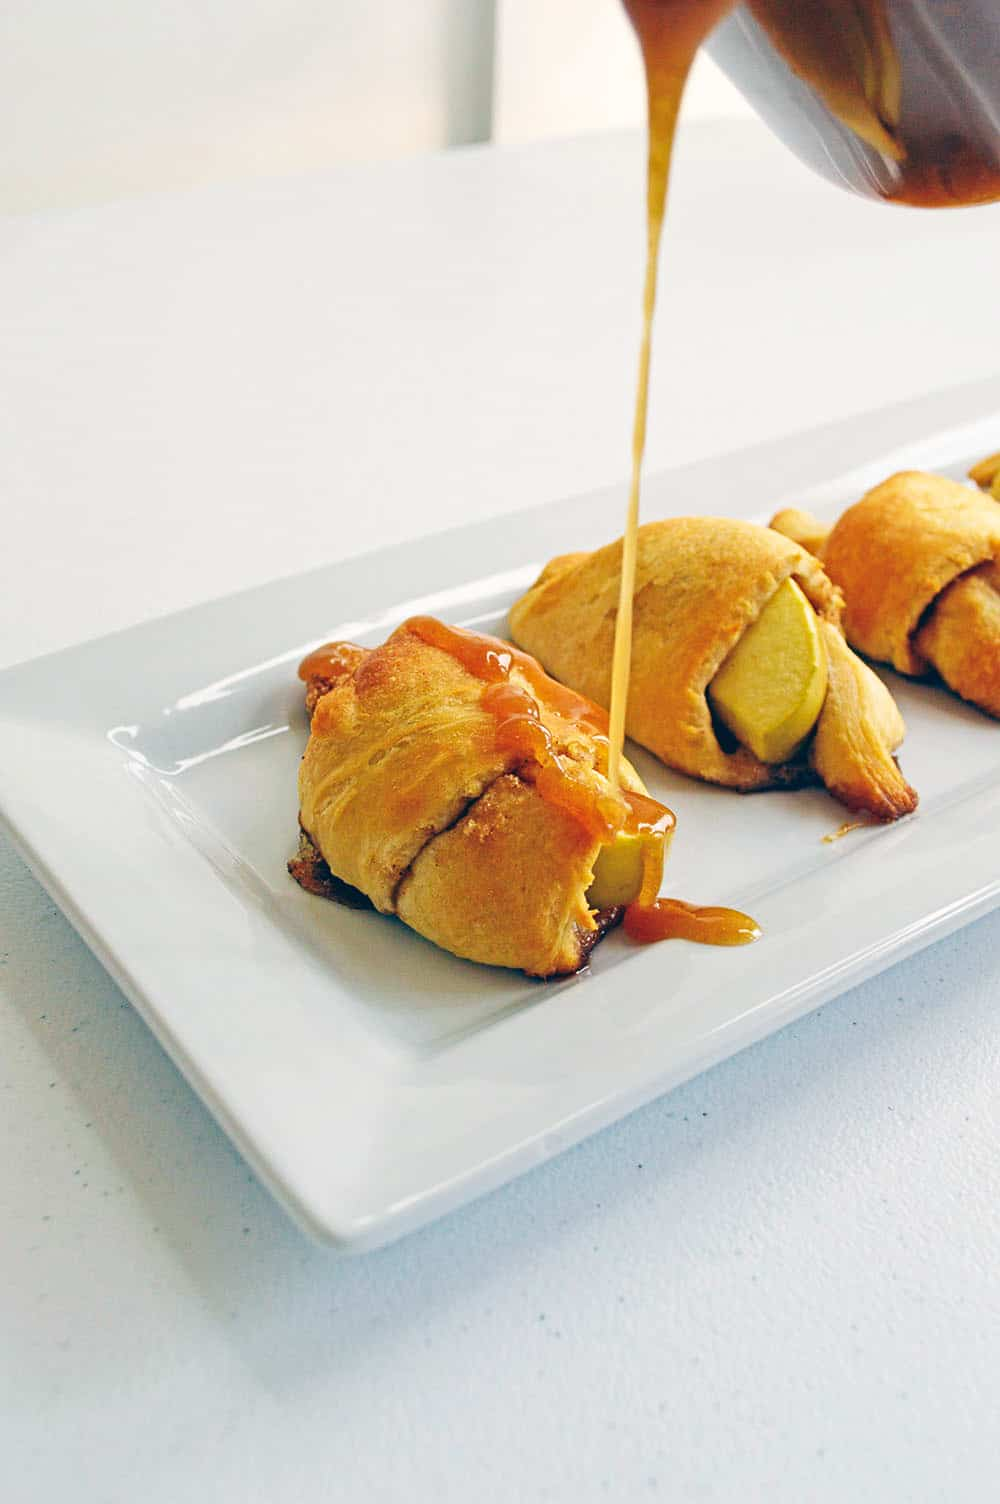 caramel being drizzled over apple crescent rolls